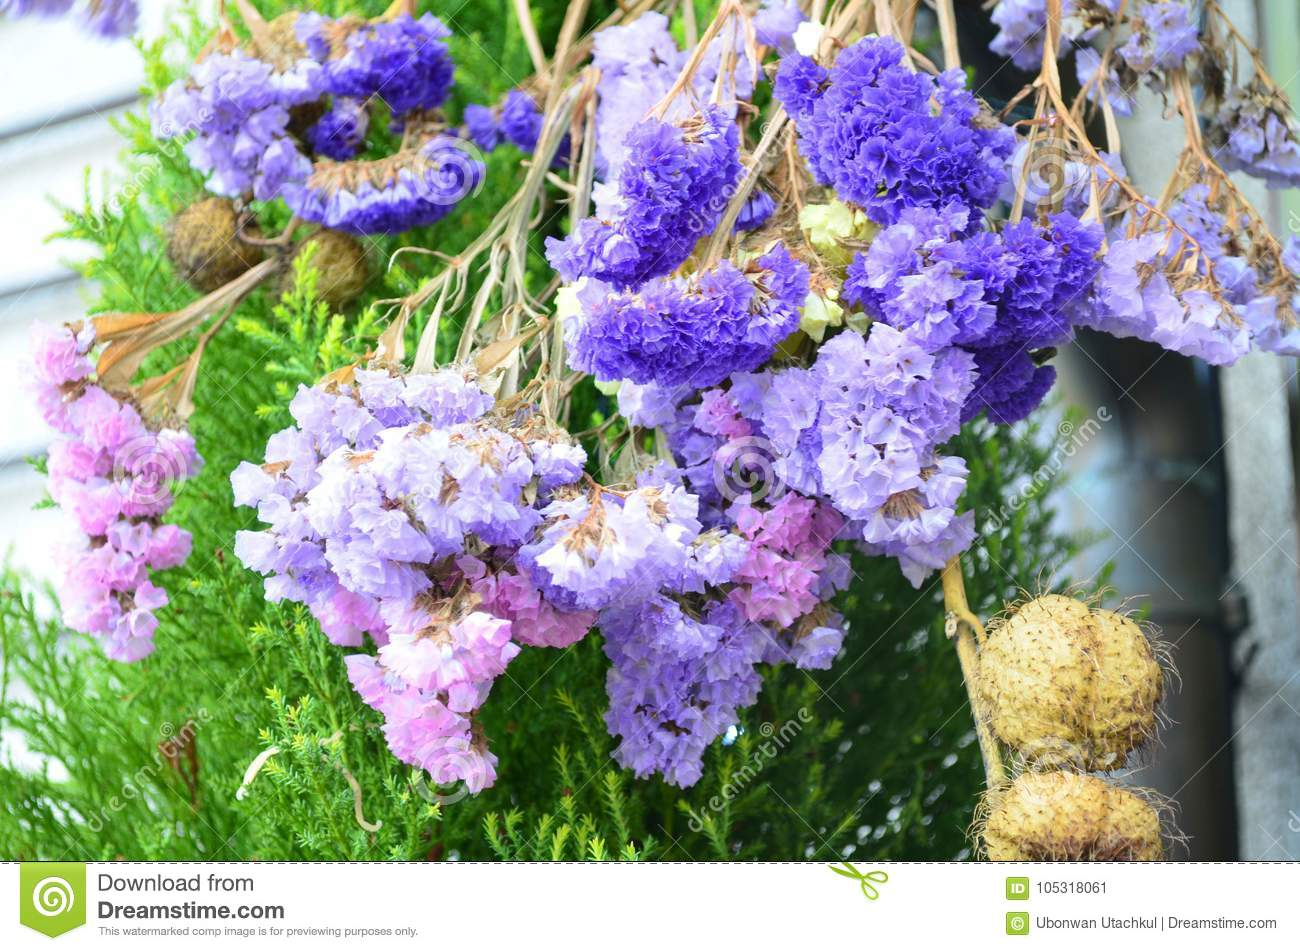 Colorful Statice Flowers Also Known As Limonium Or Sea Lavender     Download Colorful Statice Flowers Also Known As Limonium Or Sea Lavender  Stock Image   Image of